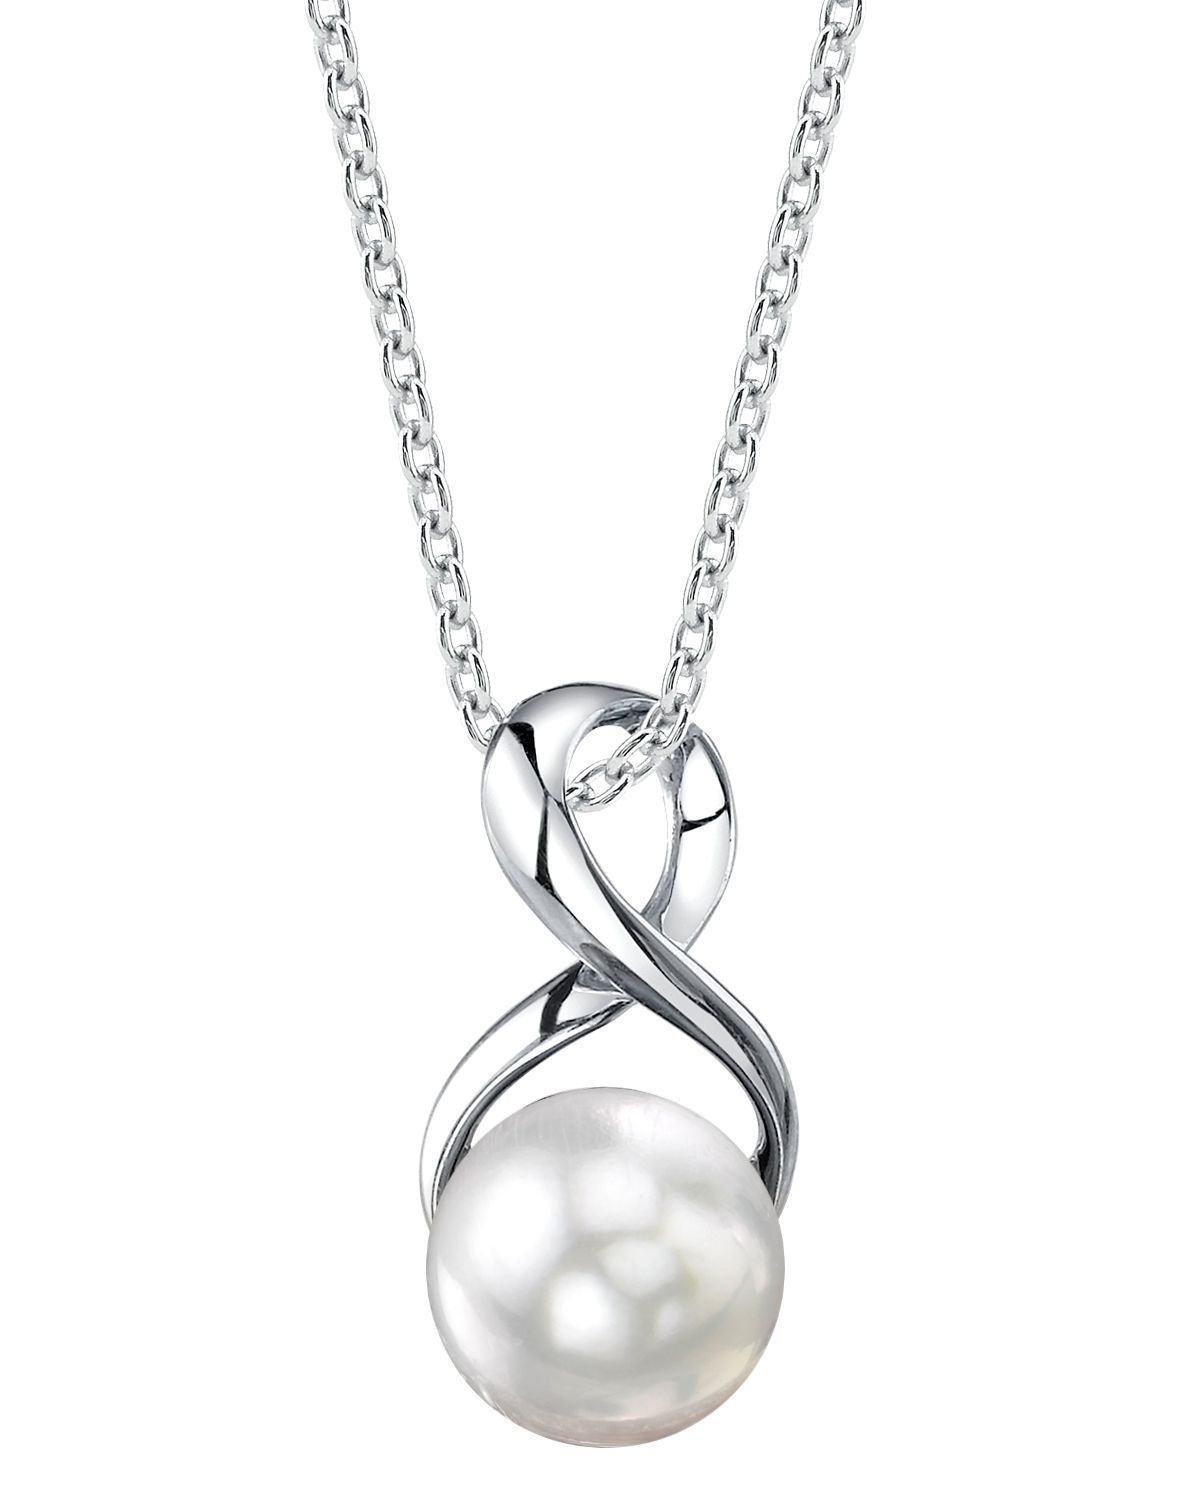 9-10mm Genuine White Freshwater Cultured Pearl Infinity Pendant Necklace for Women